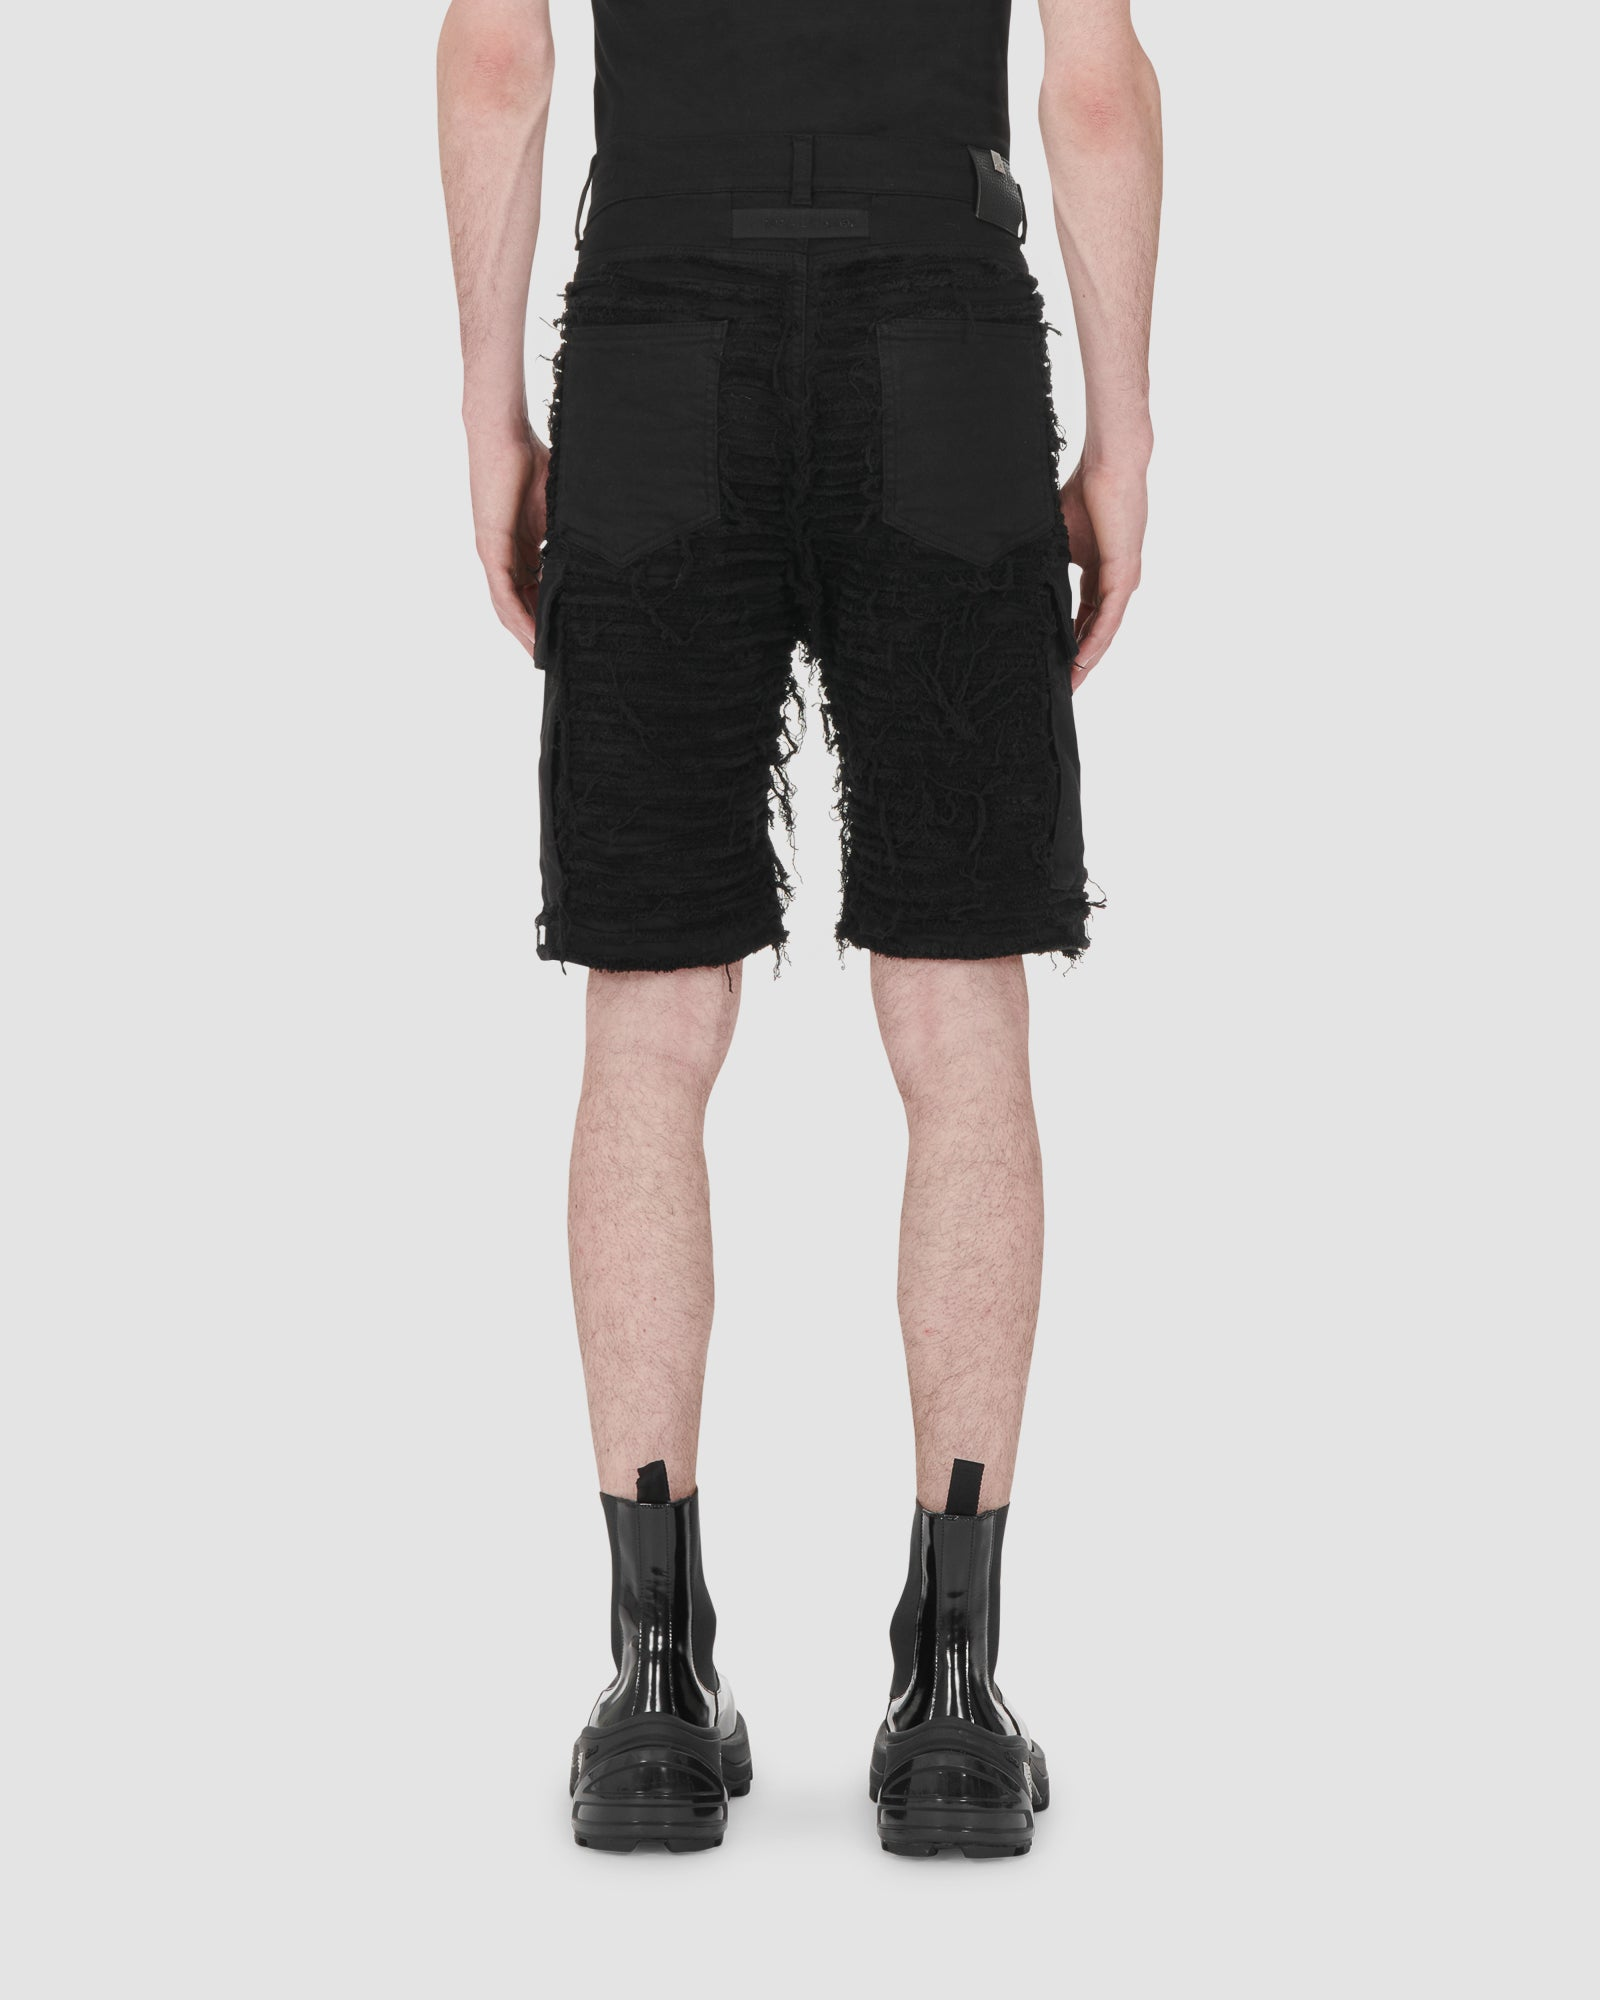 1017 ALYX 9SM | BLACKMEANS  SHORTS | Pants | BLACK, BLACKMEANS, Google Shopping, Man, MEN, Pants, S20, S20 Drop II, SHORTS, Trousers